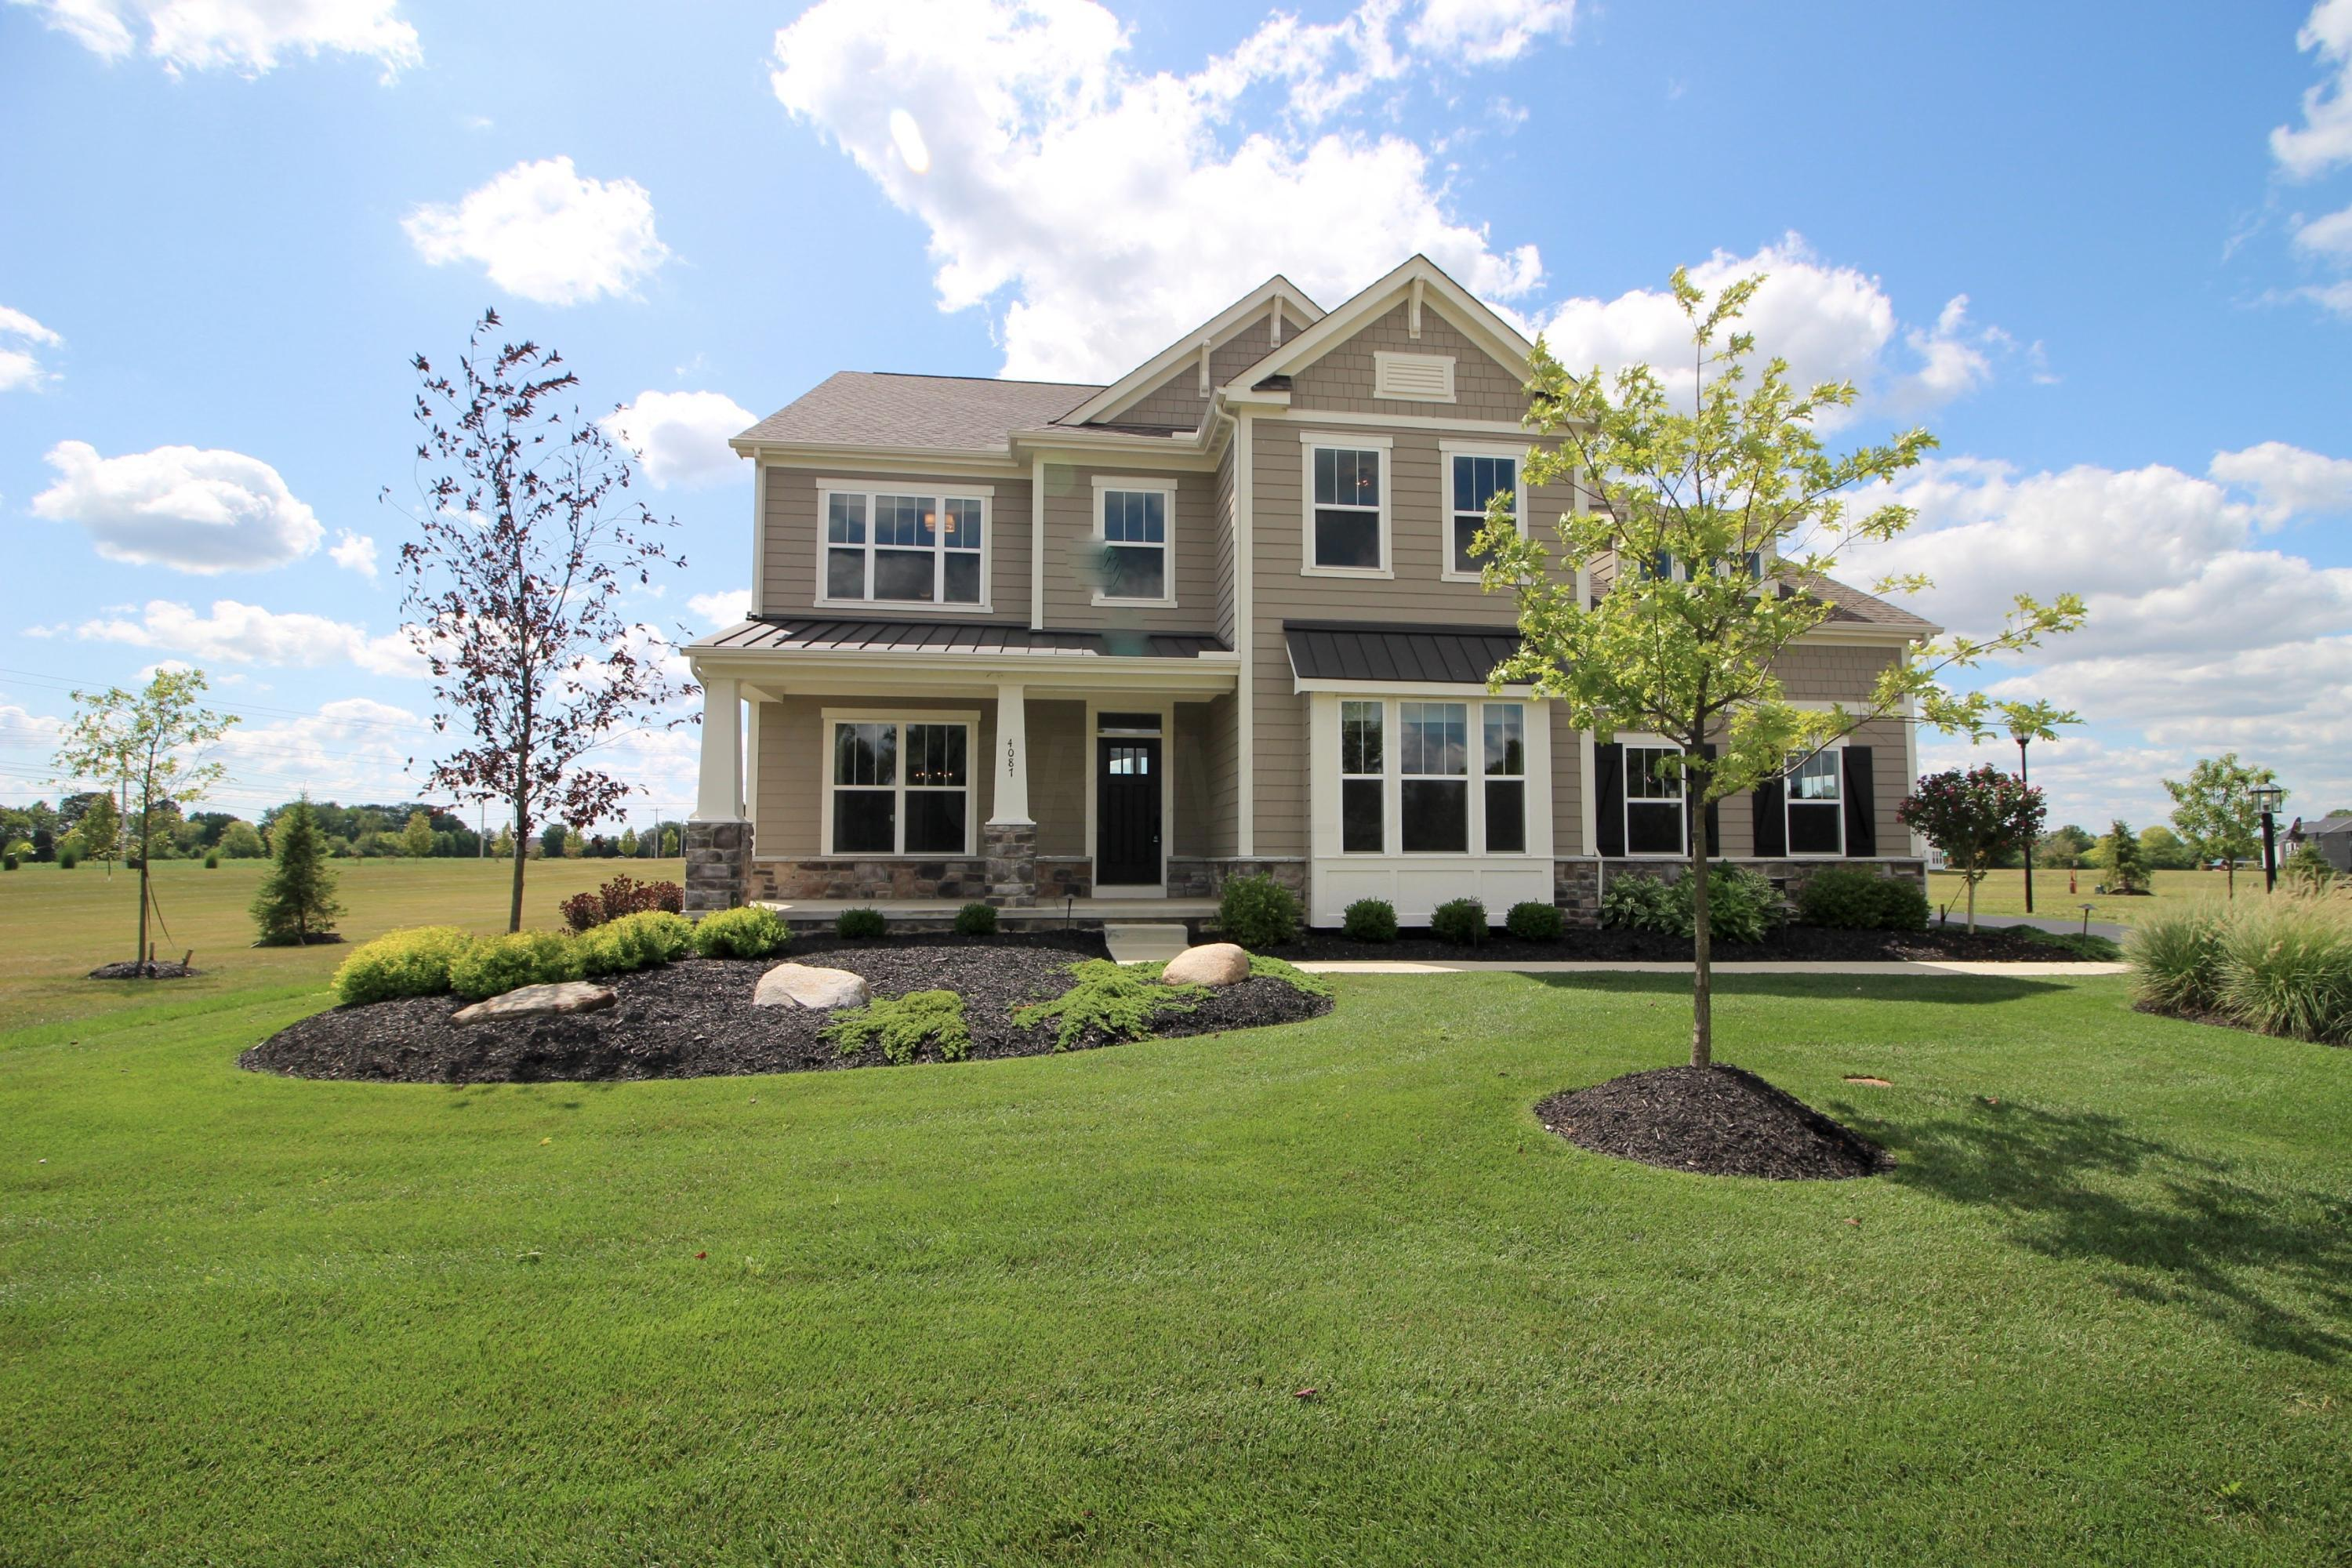 Photo of 4087 Harvest Point Drive, Powell, OH 43065